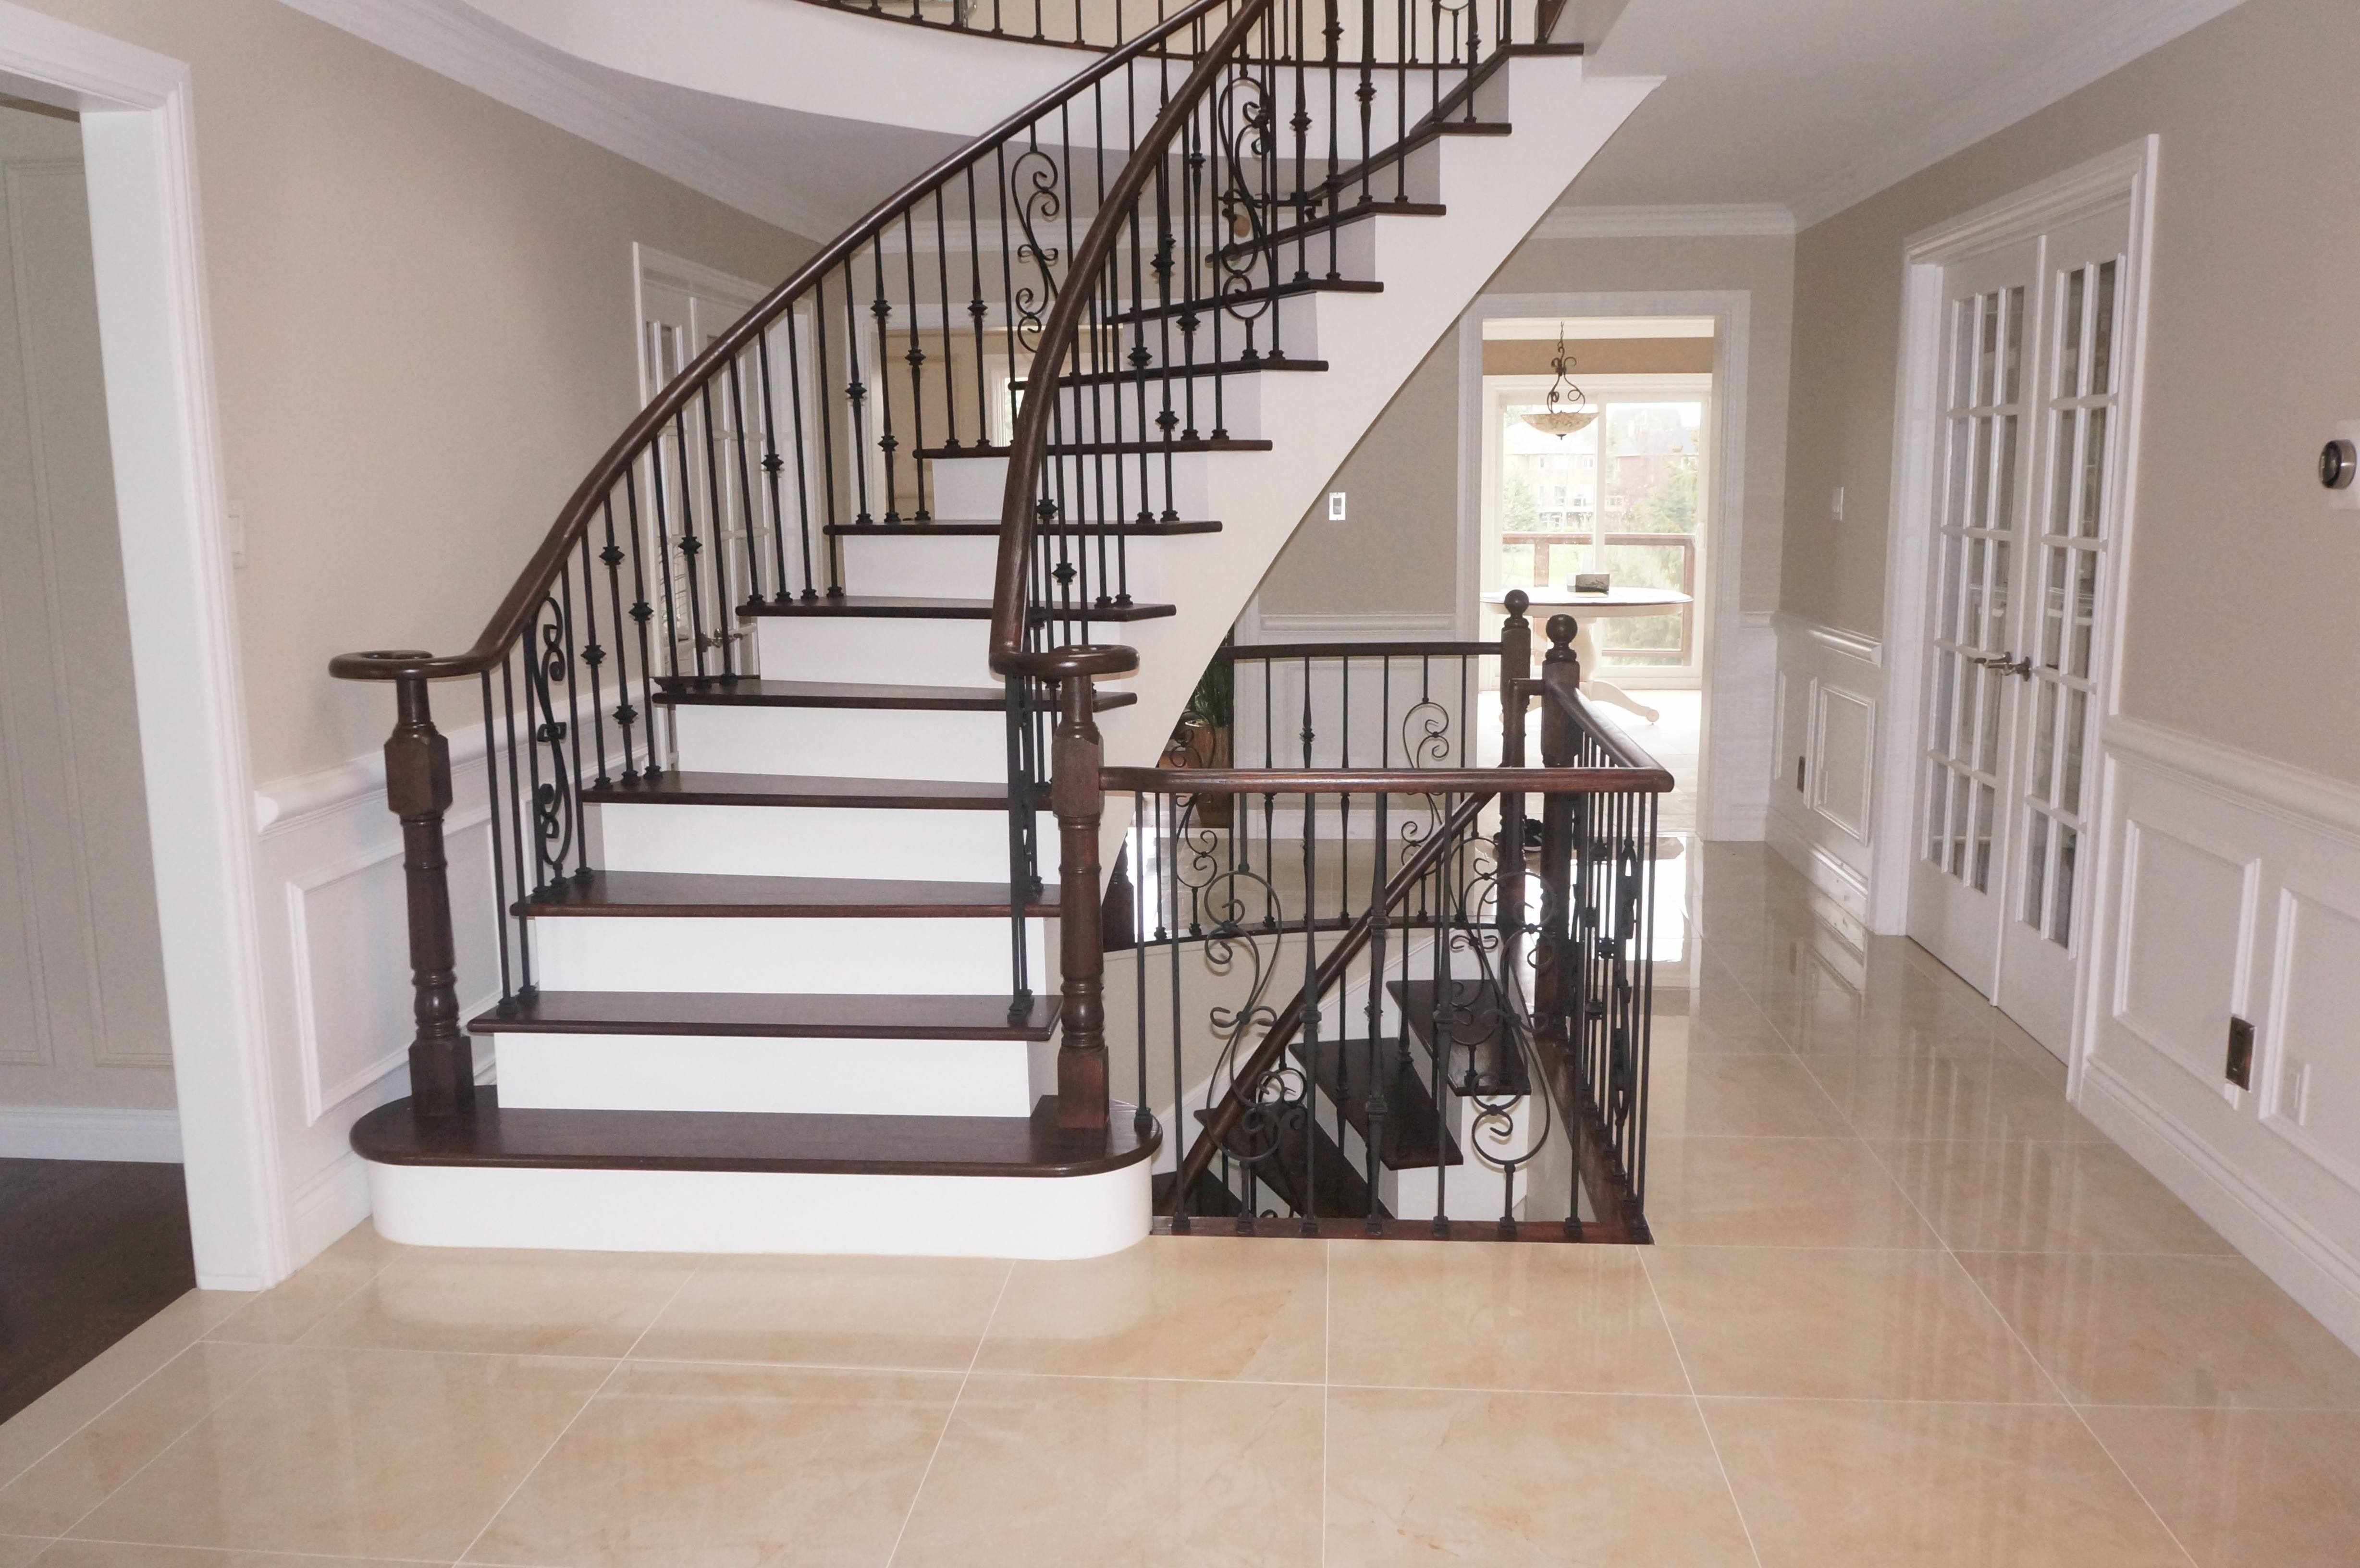 laminate riser a each the that in an closed open on canada stairs staircase has and is walls floors side often img supplies interior encased blog edmonton of or alberta opposite partitions stringer flooring igloo building this